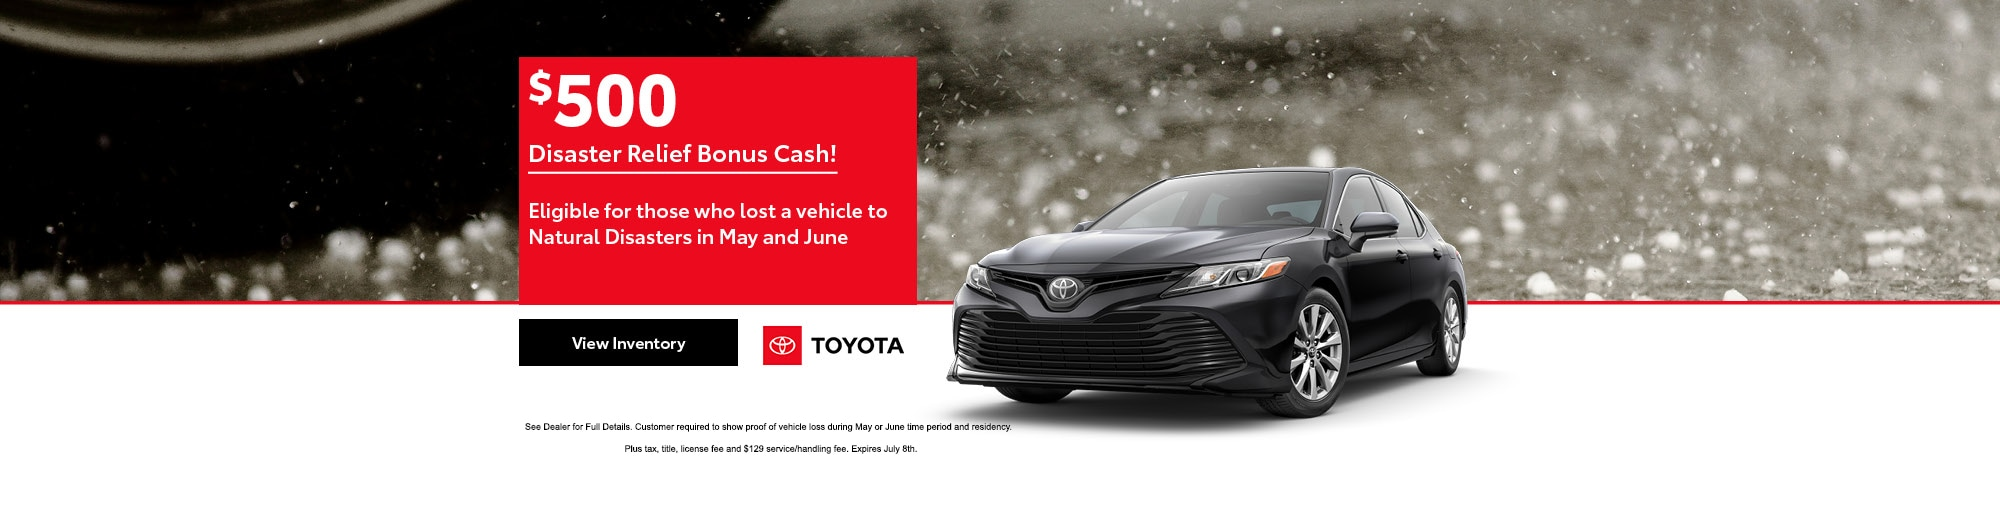 Toyota Dealers In Arkansas >> Toyota Of Fayetteville Toyota Dealership Sells New And Used Cars